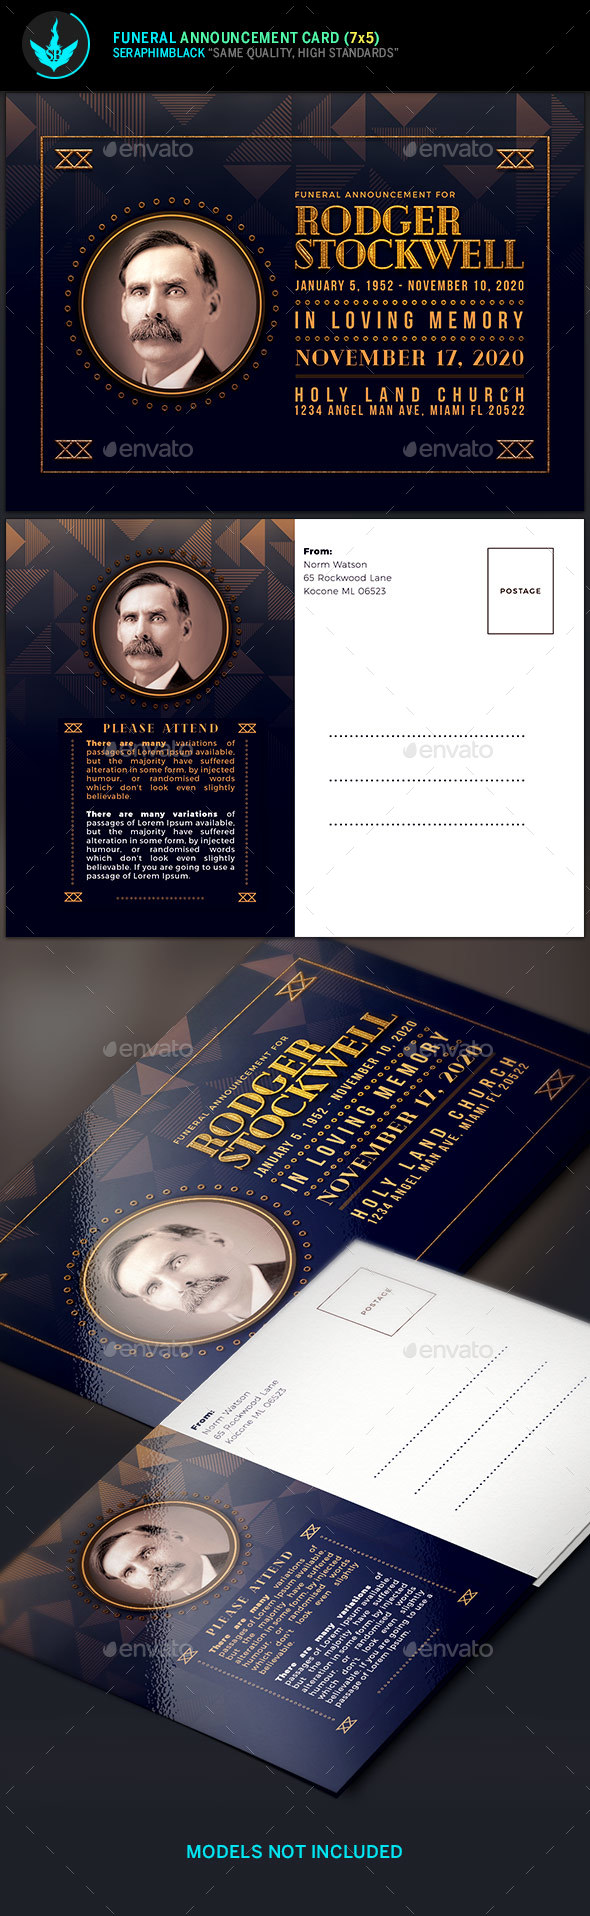 Art Deco Funeral Announcement Card Template - Church Flyers